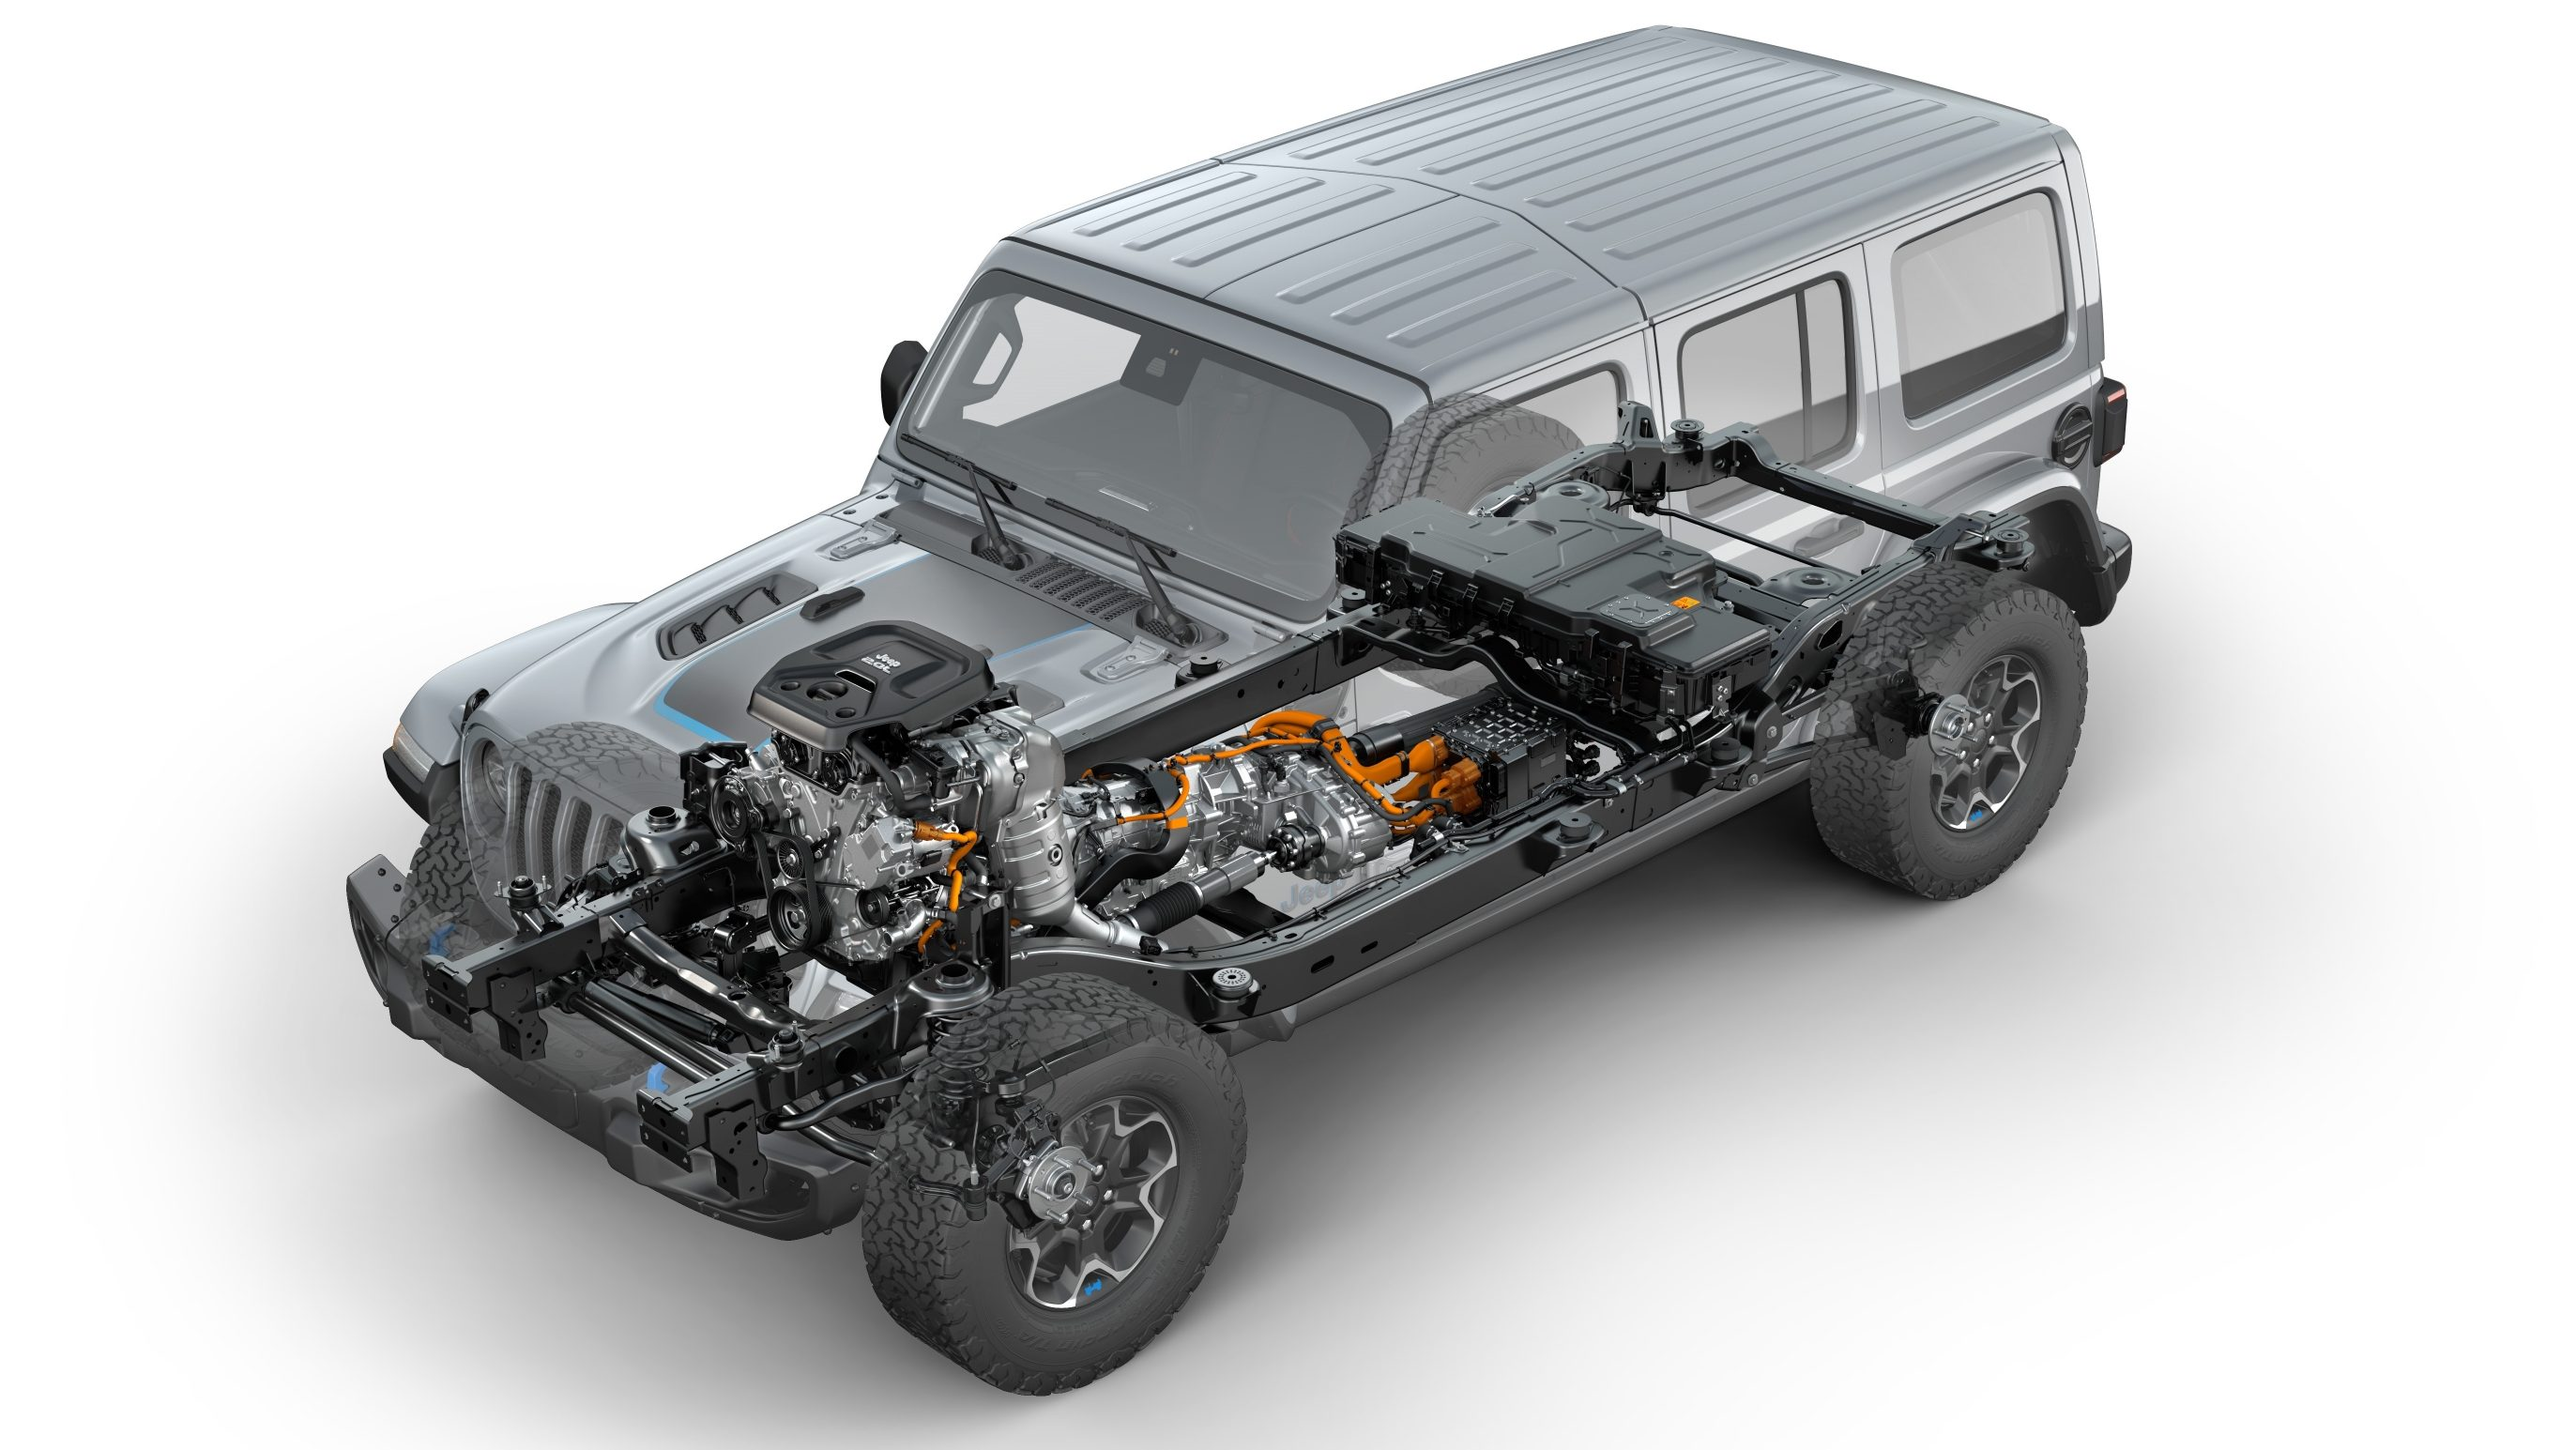 Front three-quarters view of the 2021 Jeep® Wrangler Rubicon 4xe hybrid electric, showing the location of powertrain components.